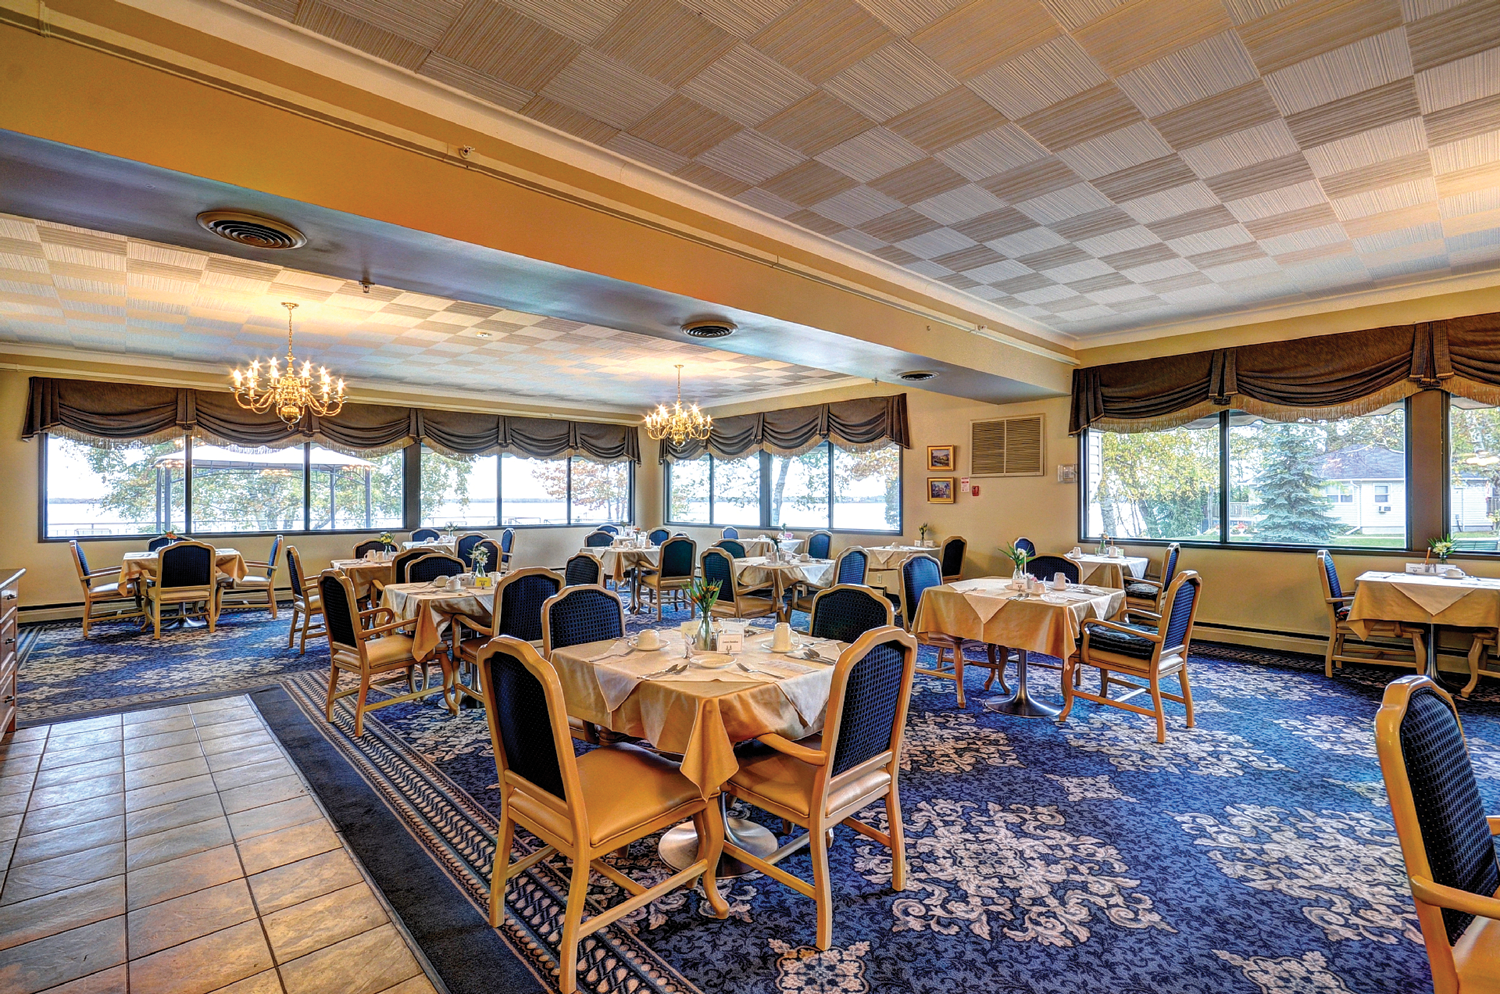 Birchmere Dining Room. Click to view larger image.